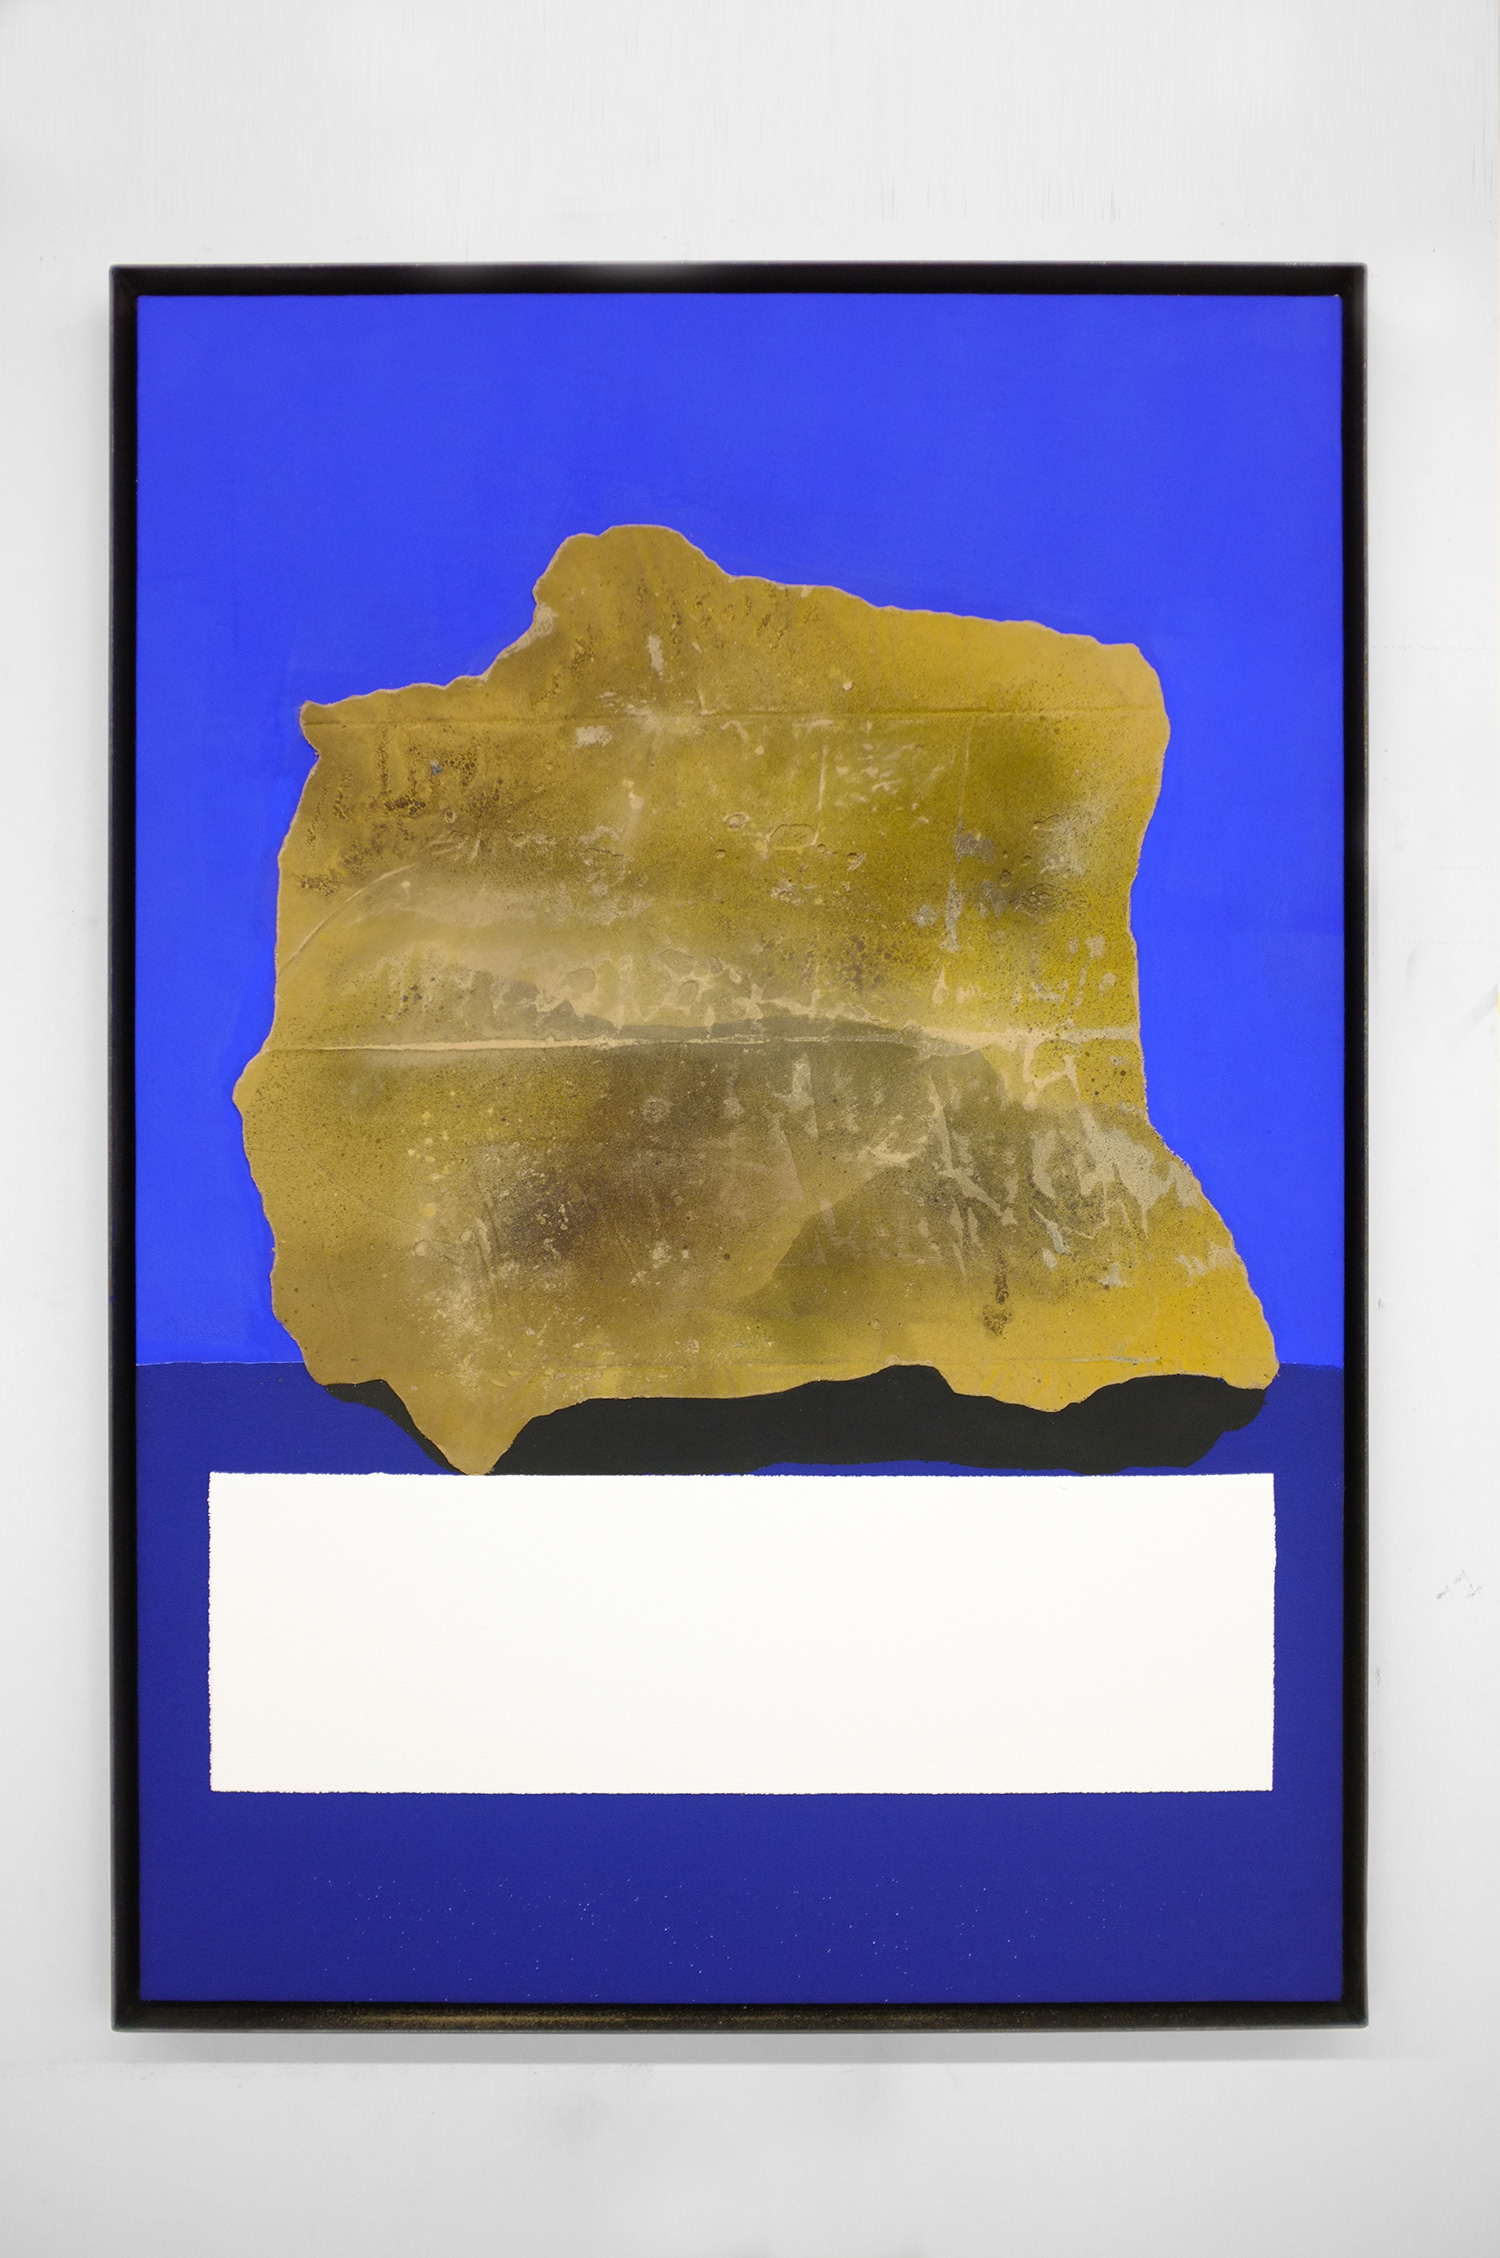 ROCK STUDY (PAPA)  2017  41 X 29 INCHES  CASEIN, ACRYLIC AND GROUT ON CANVAS OVER PANEL IN STEEL FRAME